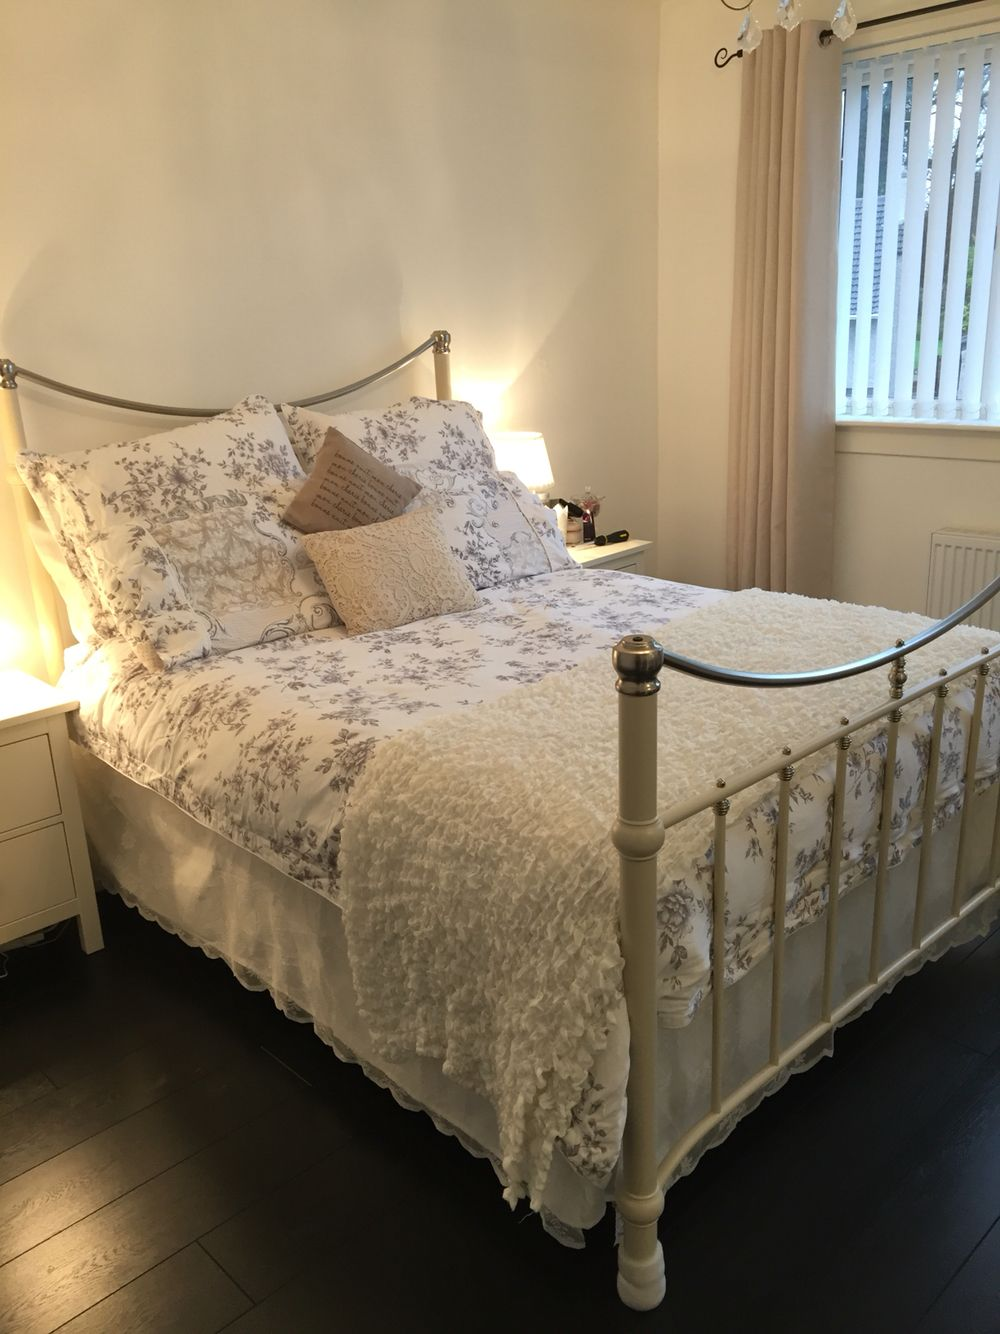 Beautiful metal bed frame with homemade lace valance bed skirt ...